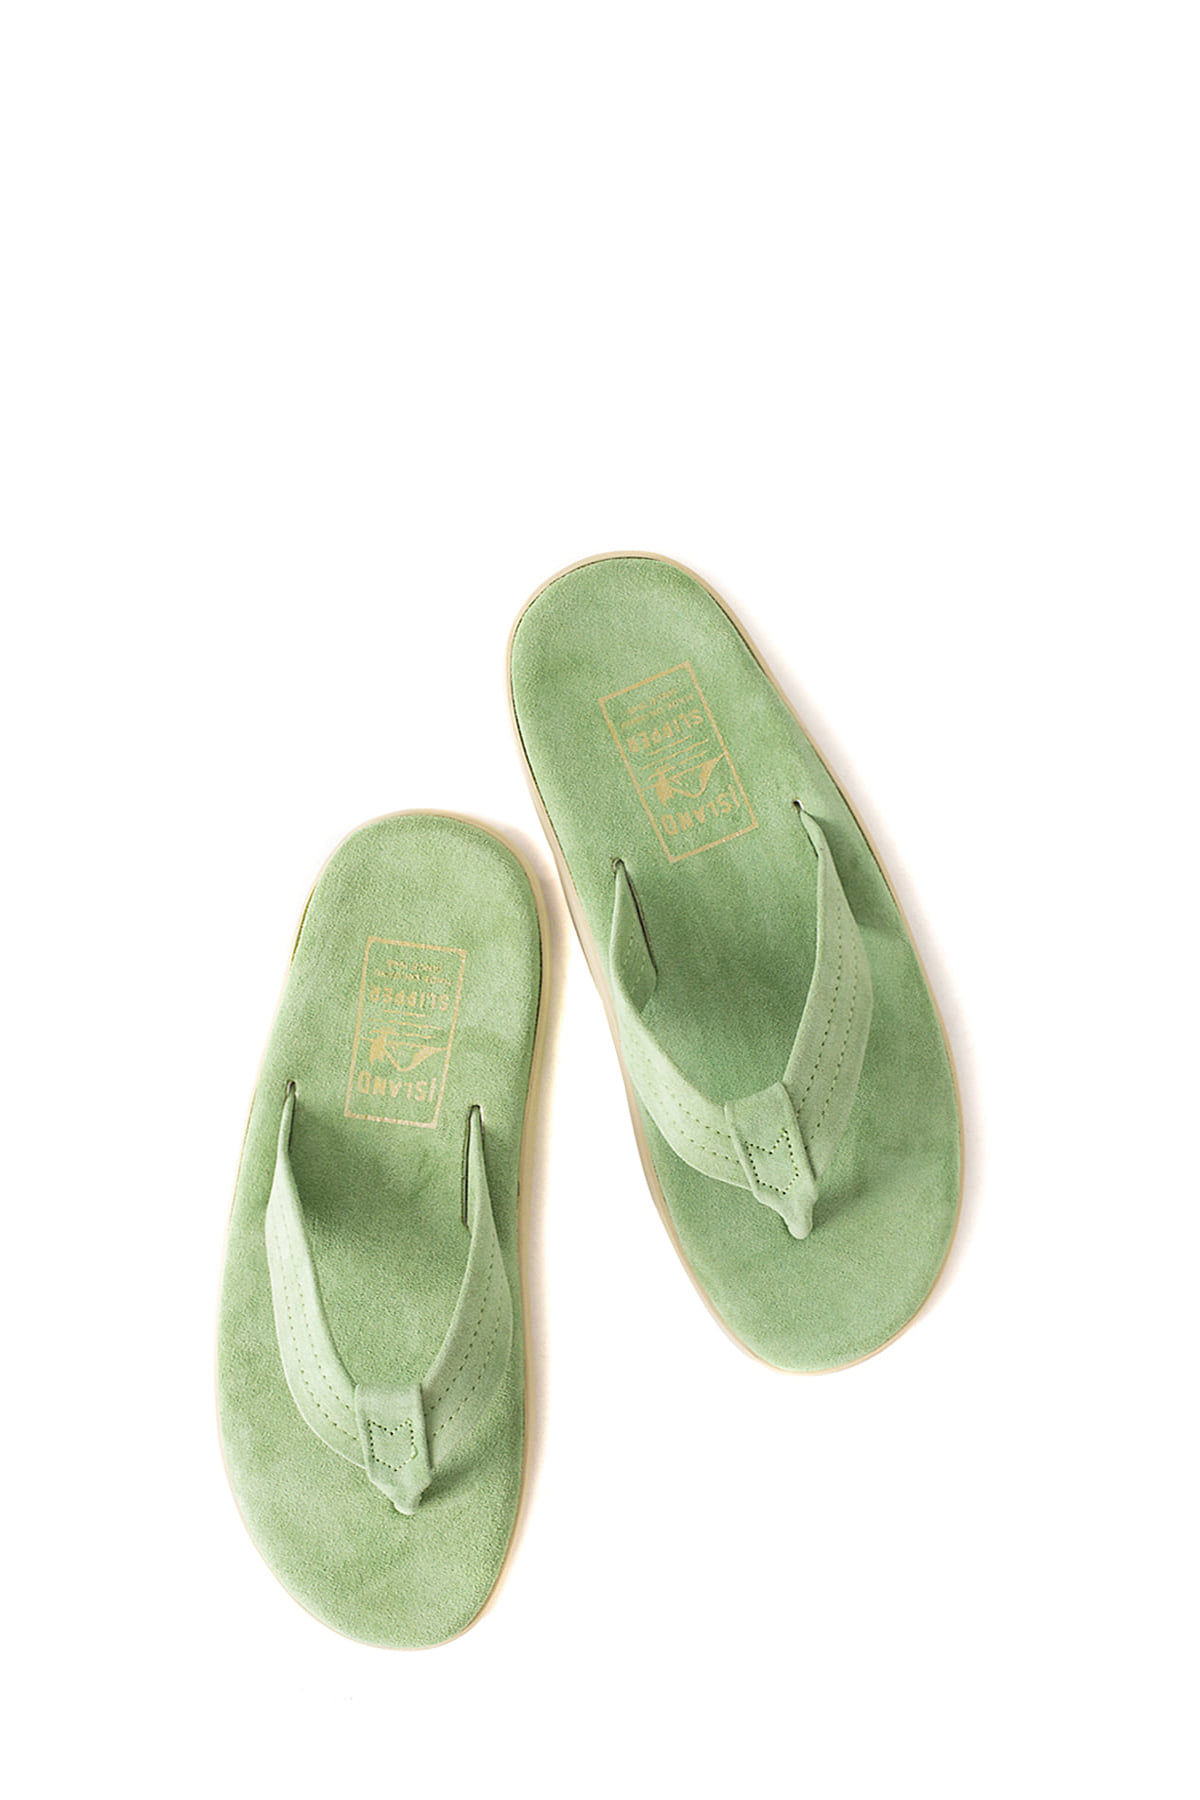 ISLAND SLIPPER : PT203 (Kelly Green Suede)